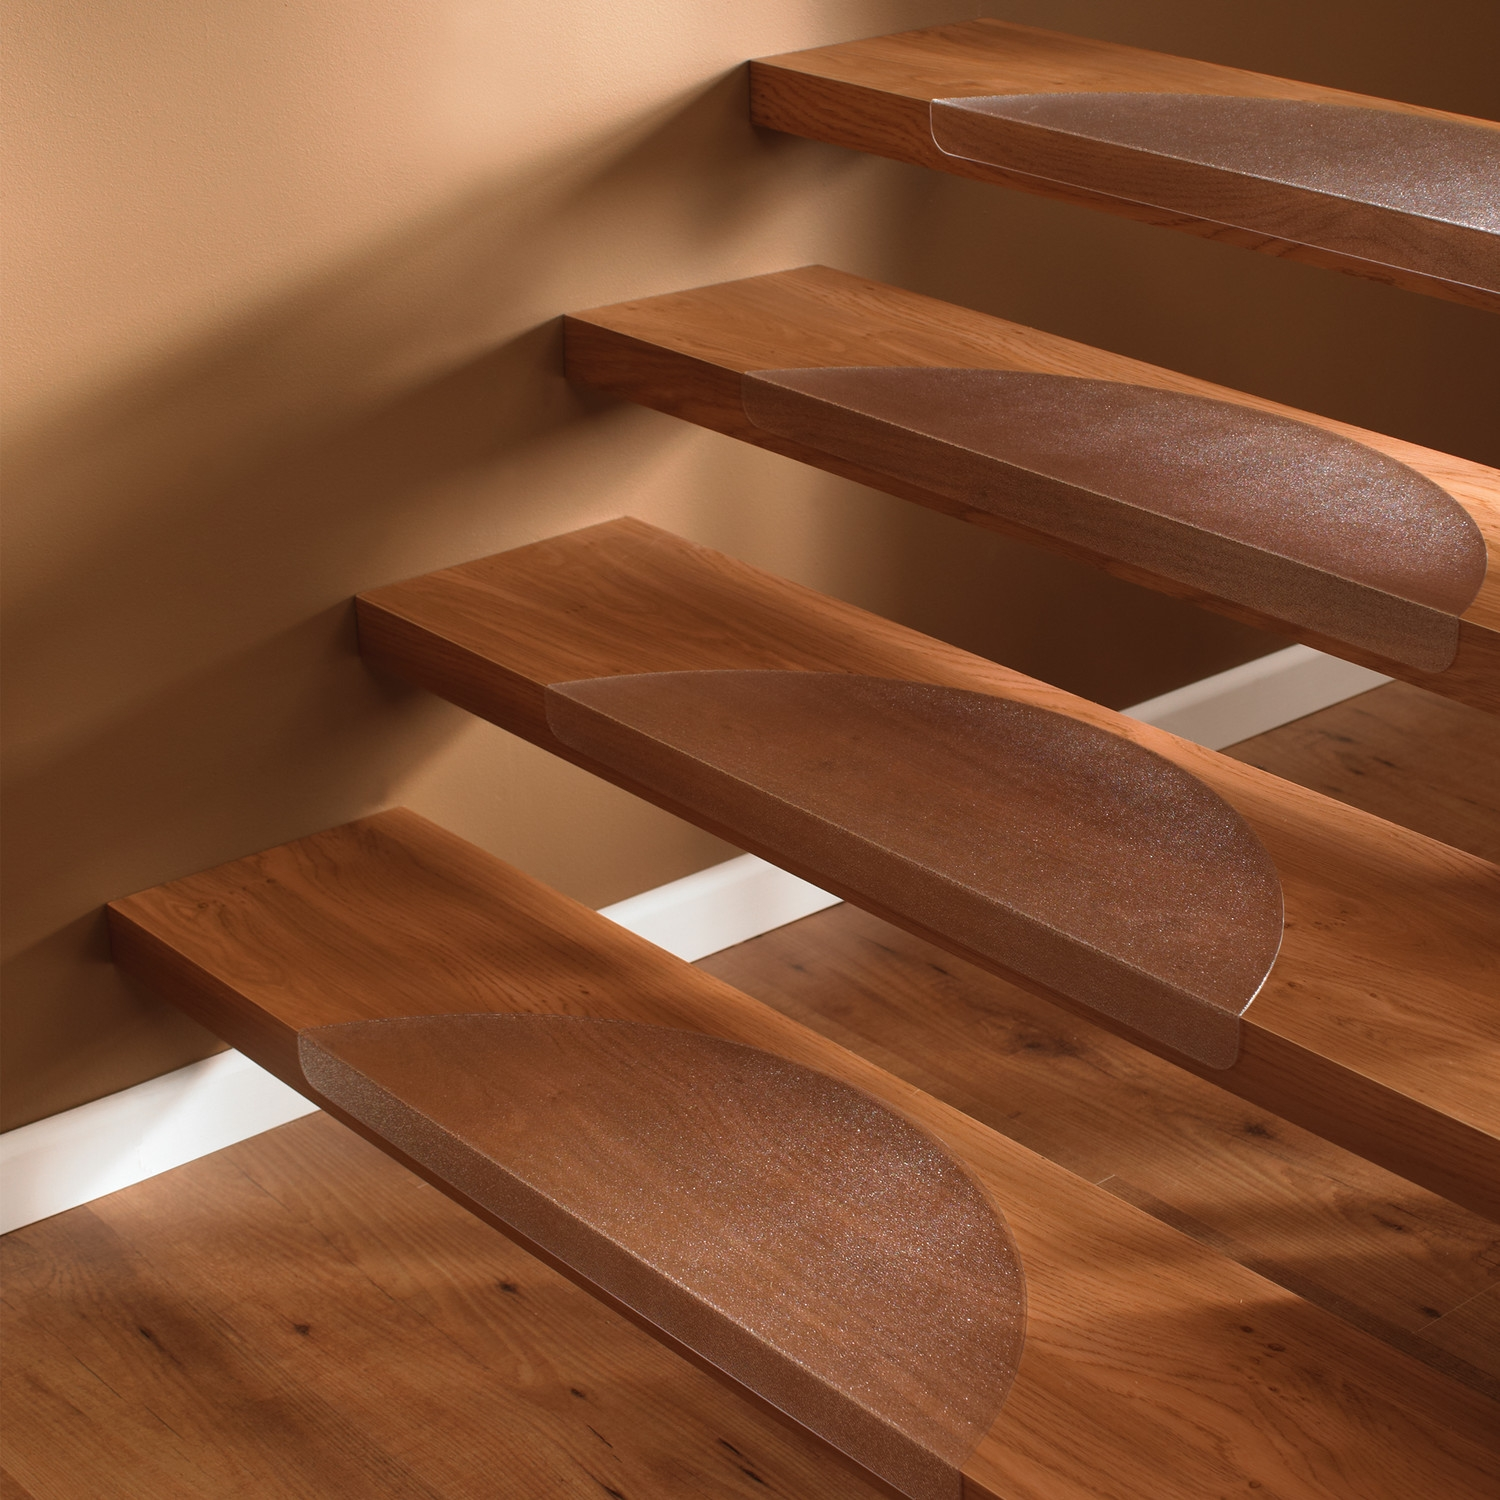 Interior Wood Stairs With Non Slip Stair Treads Throughout Stair Treads For Wooden Stairs (#12 of 20)